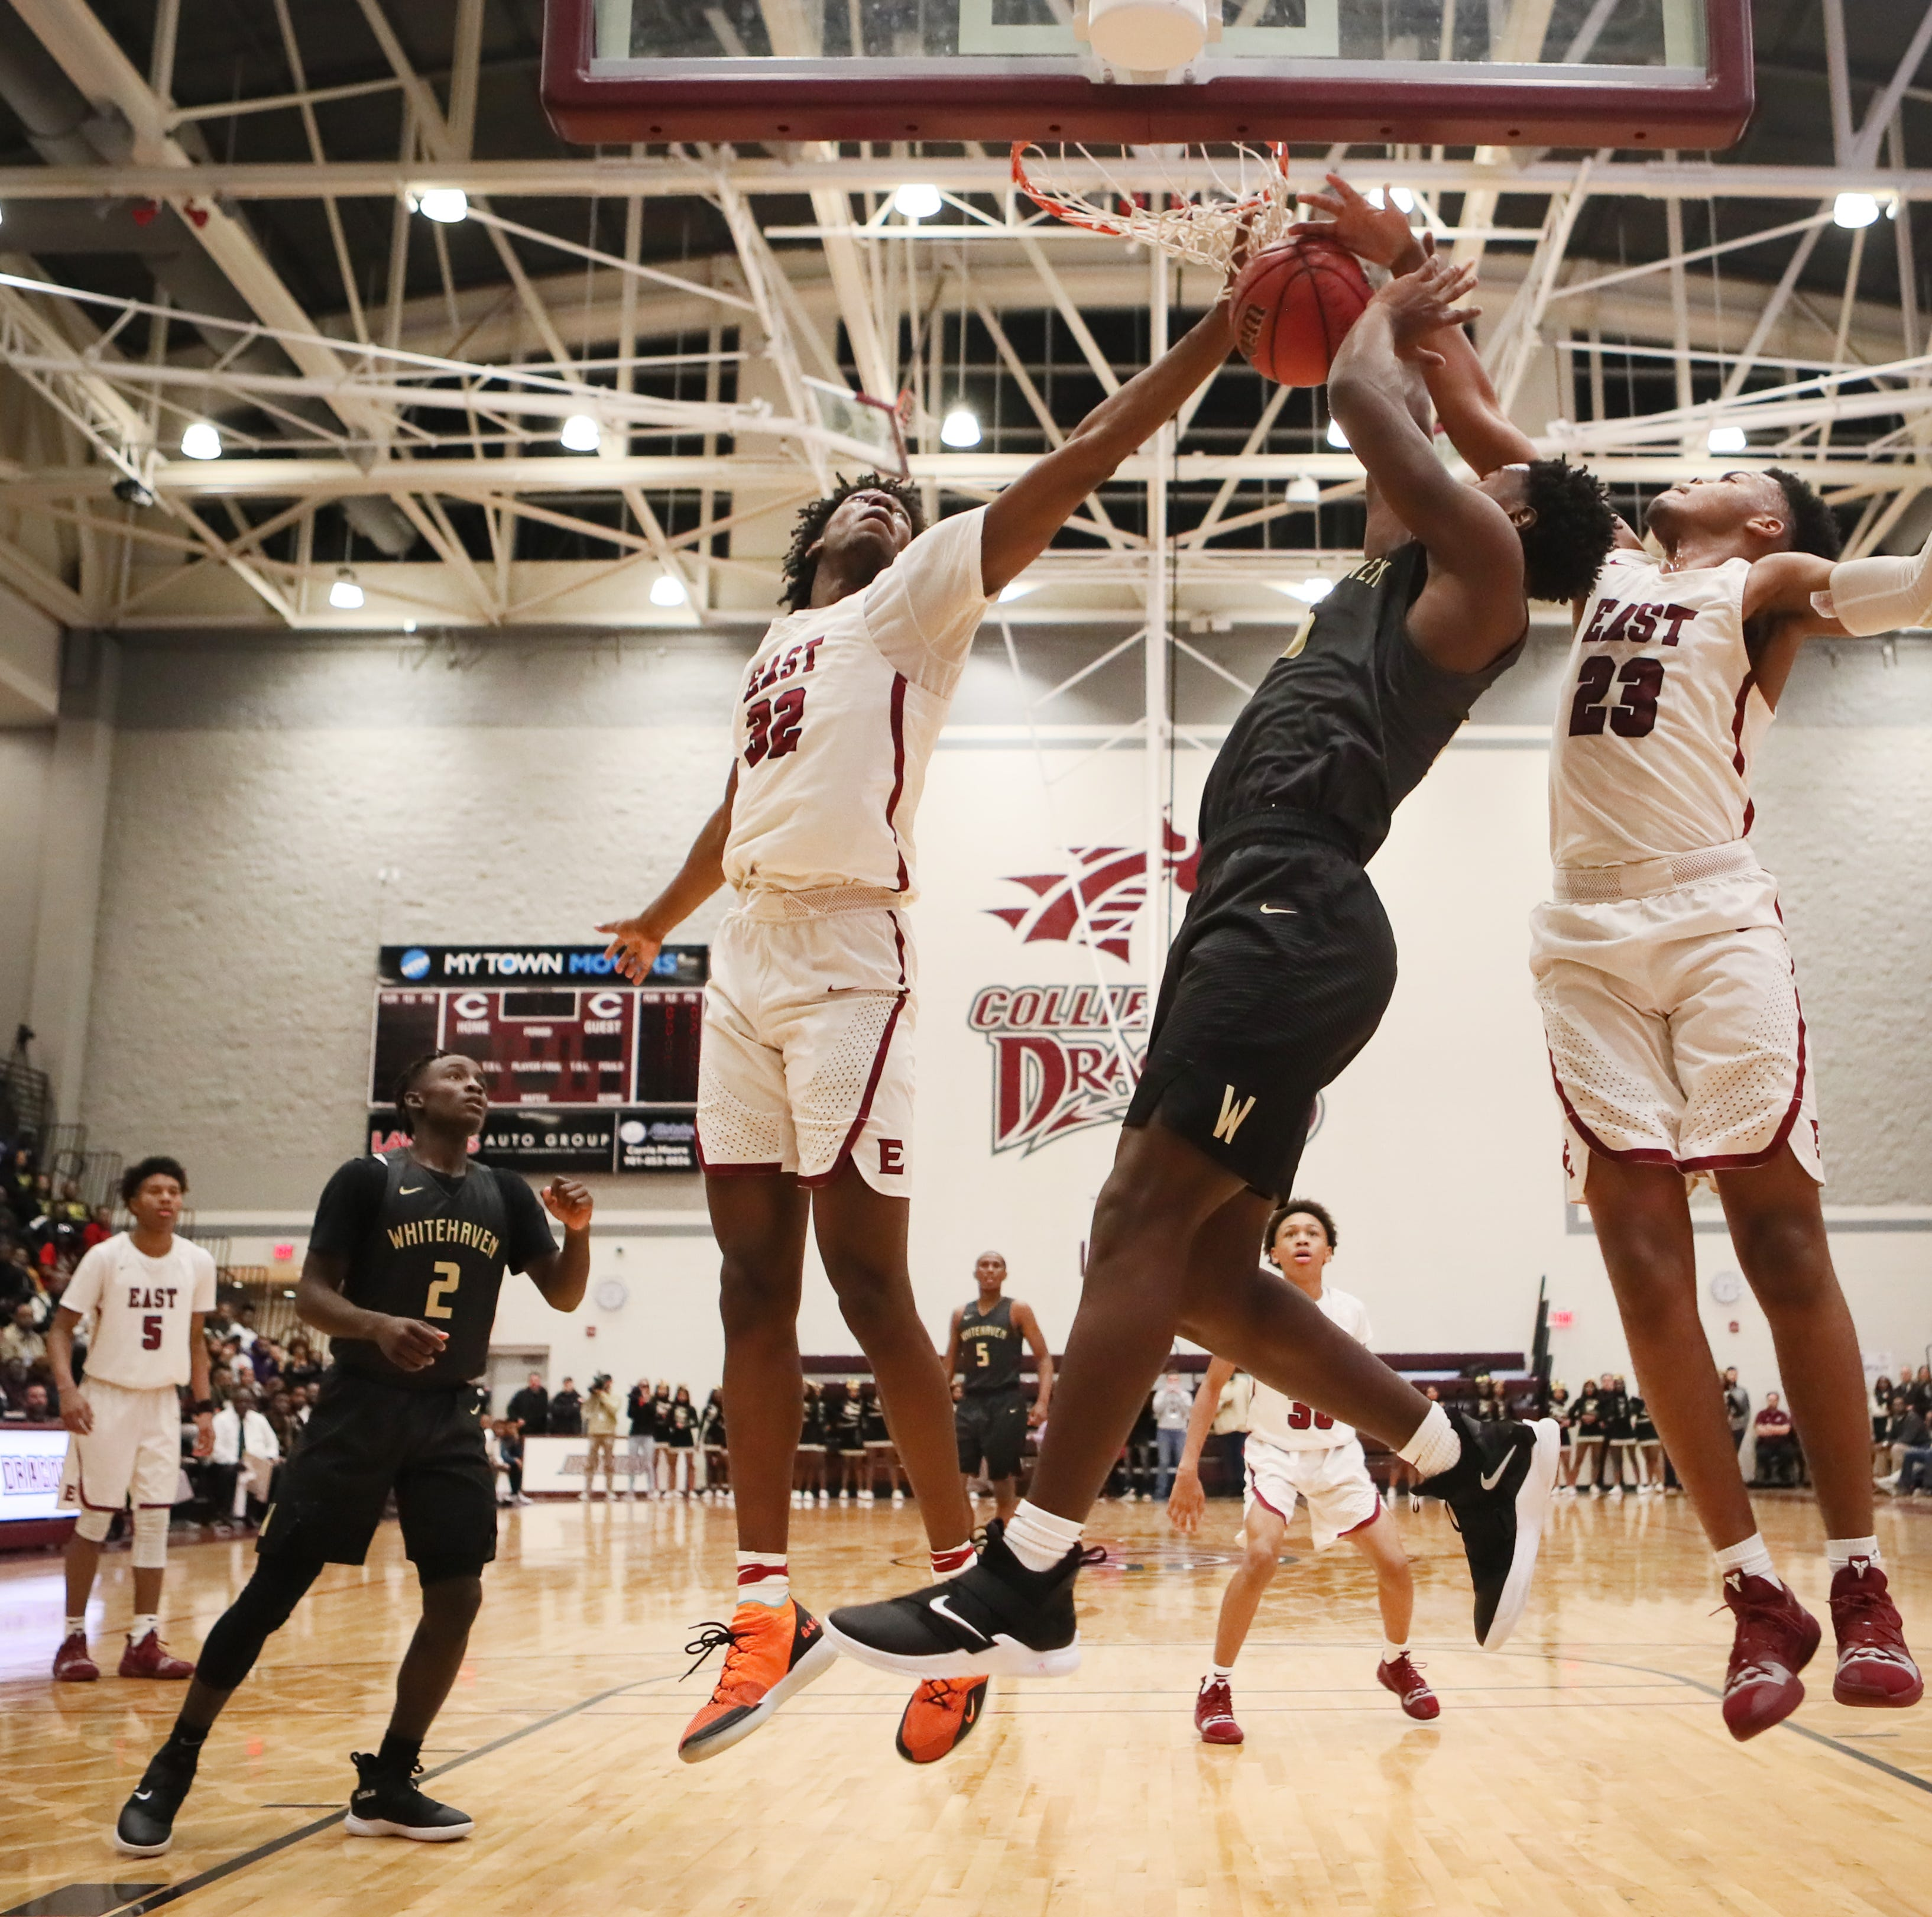 TSSAA boys basketball state tournament 2019 preview and predictions